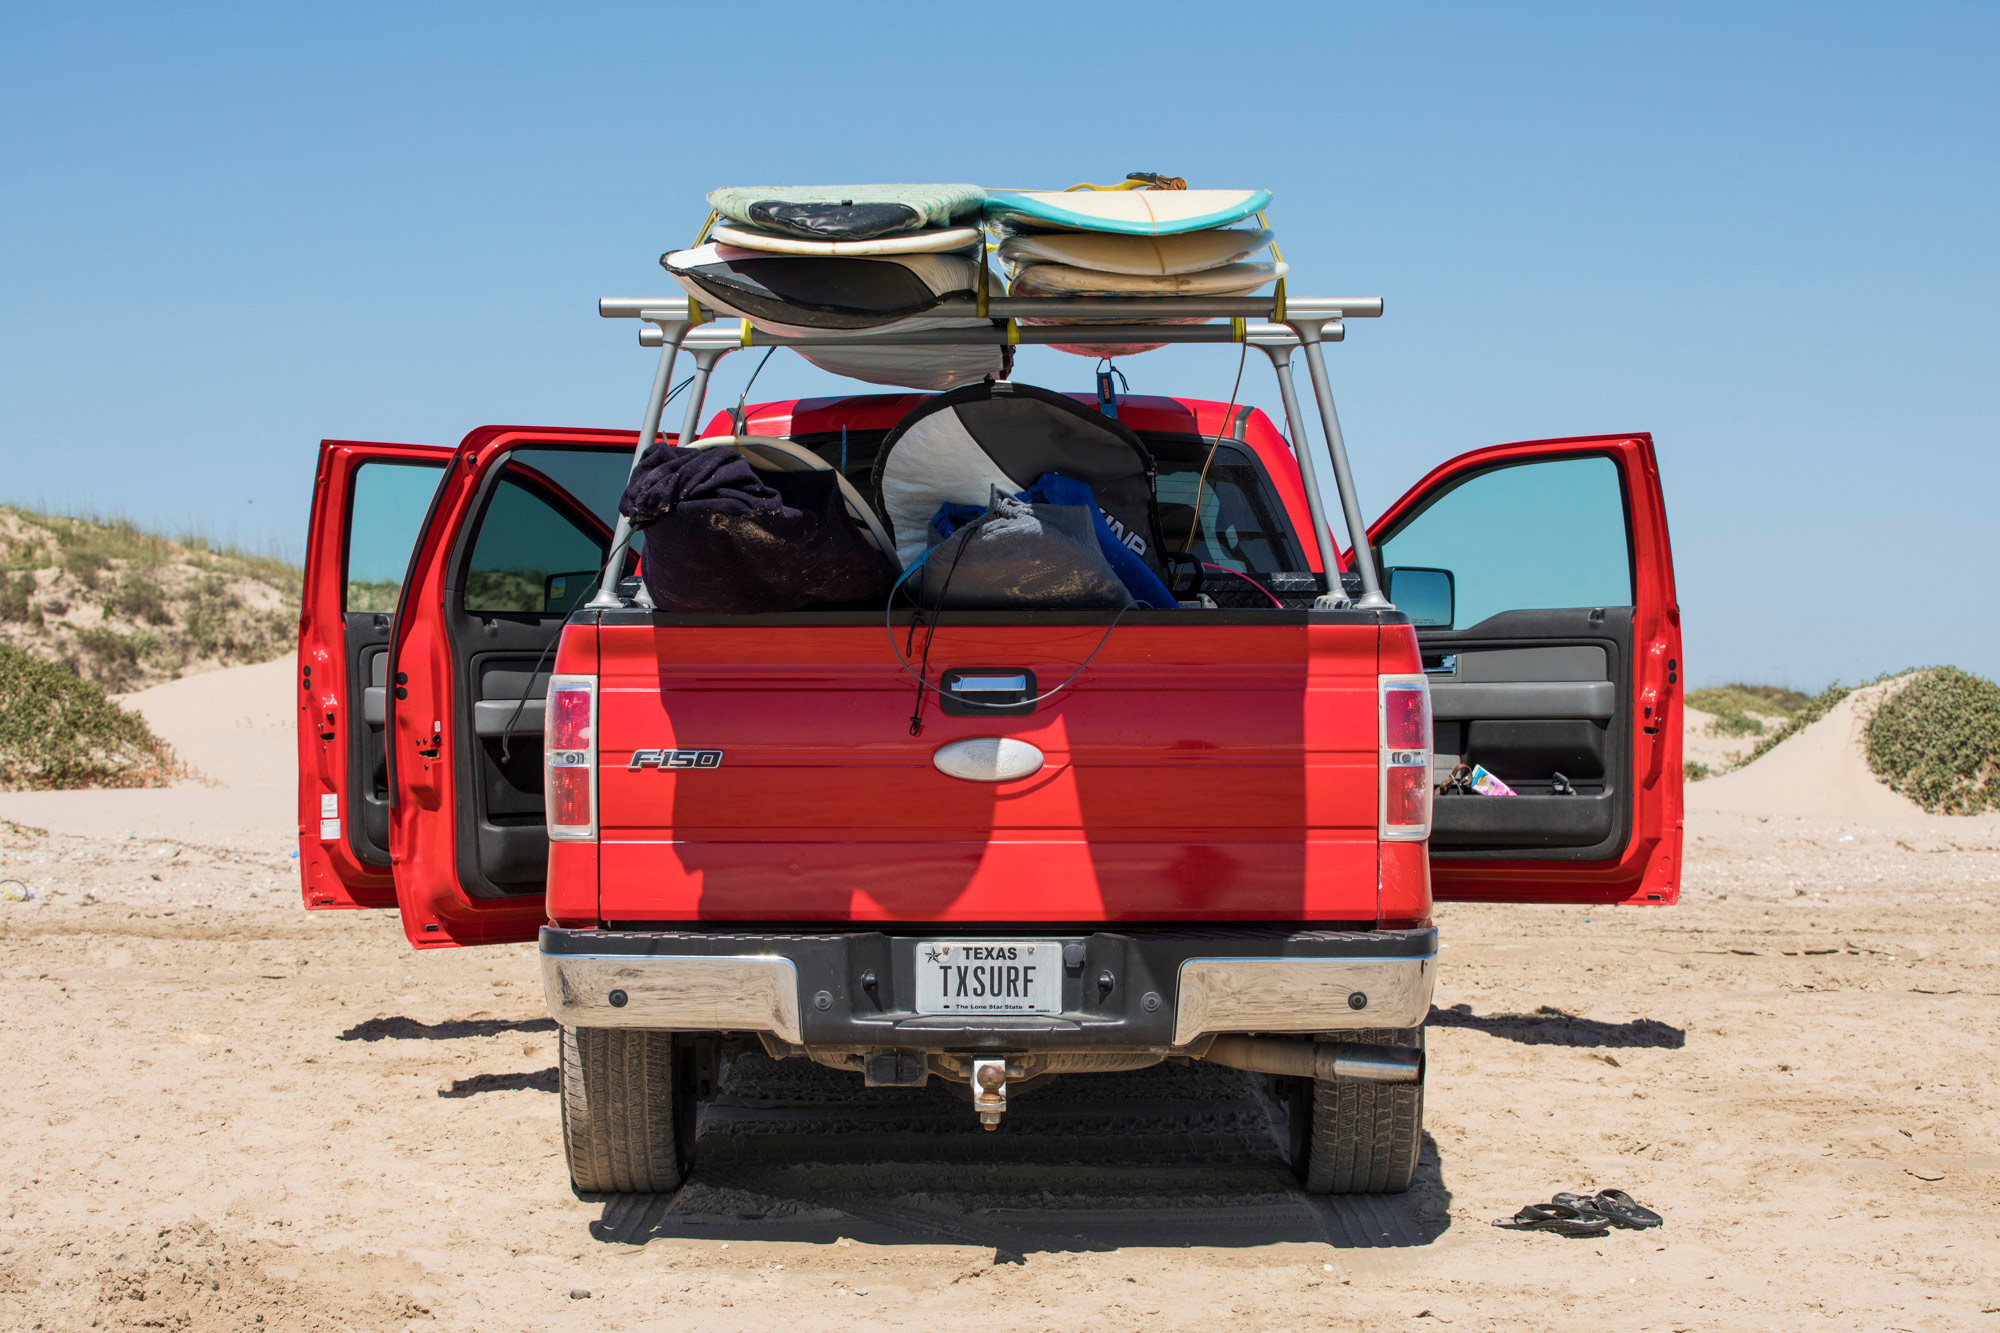 Red Texas Ford truck with surfboards